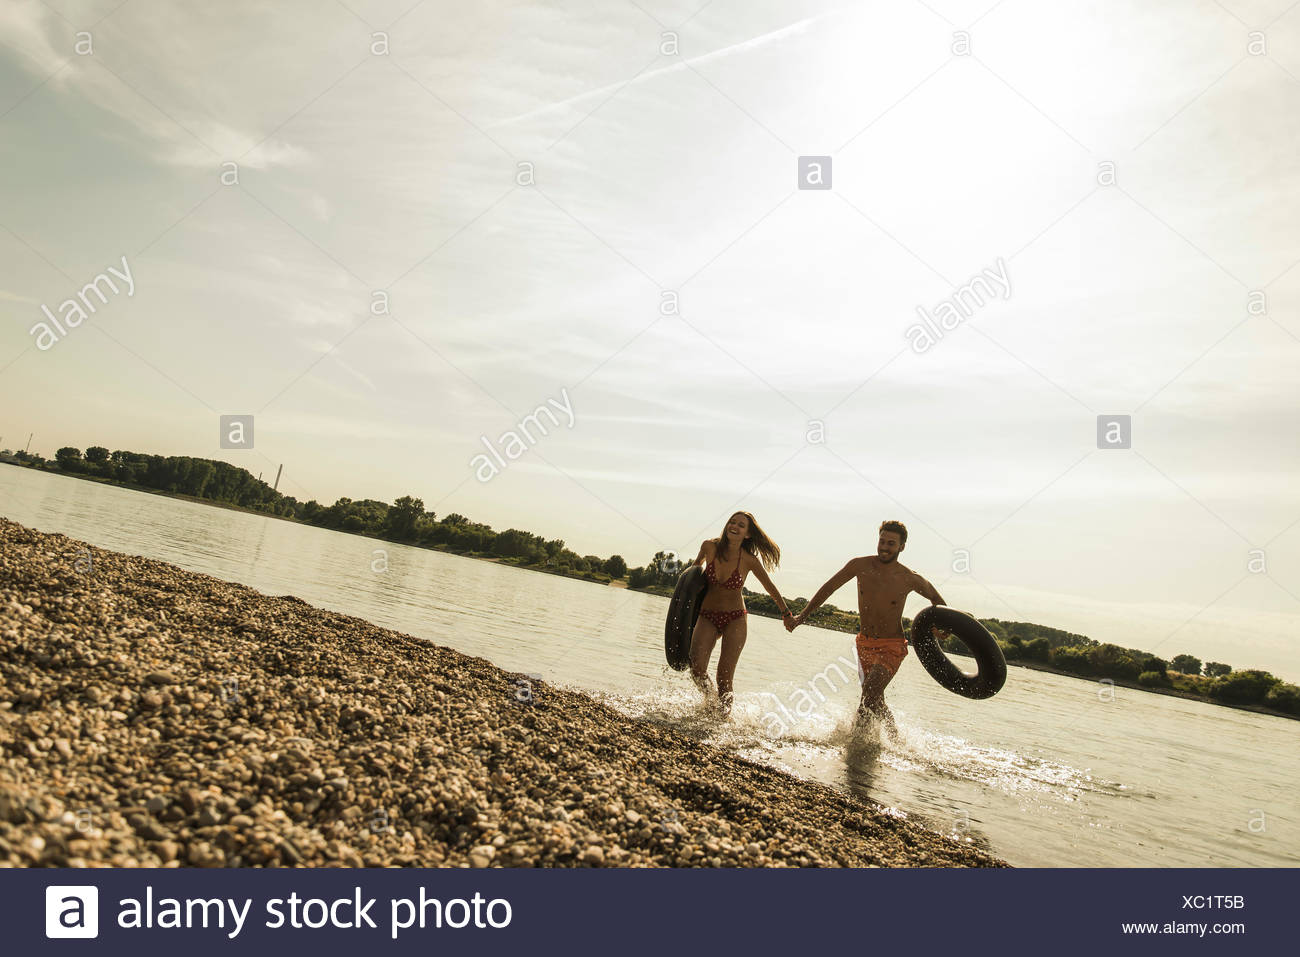 Young couple running with inner tubes in river - Stock Image